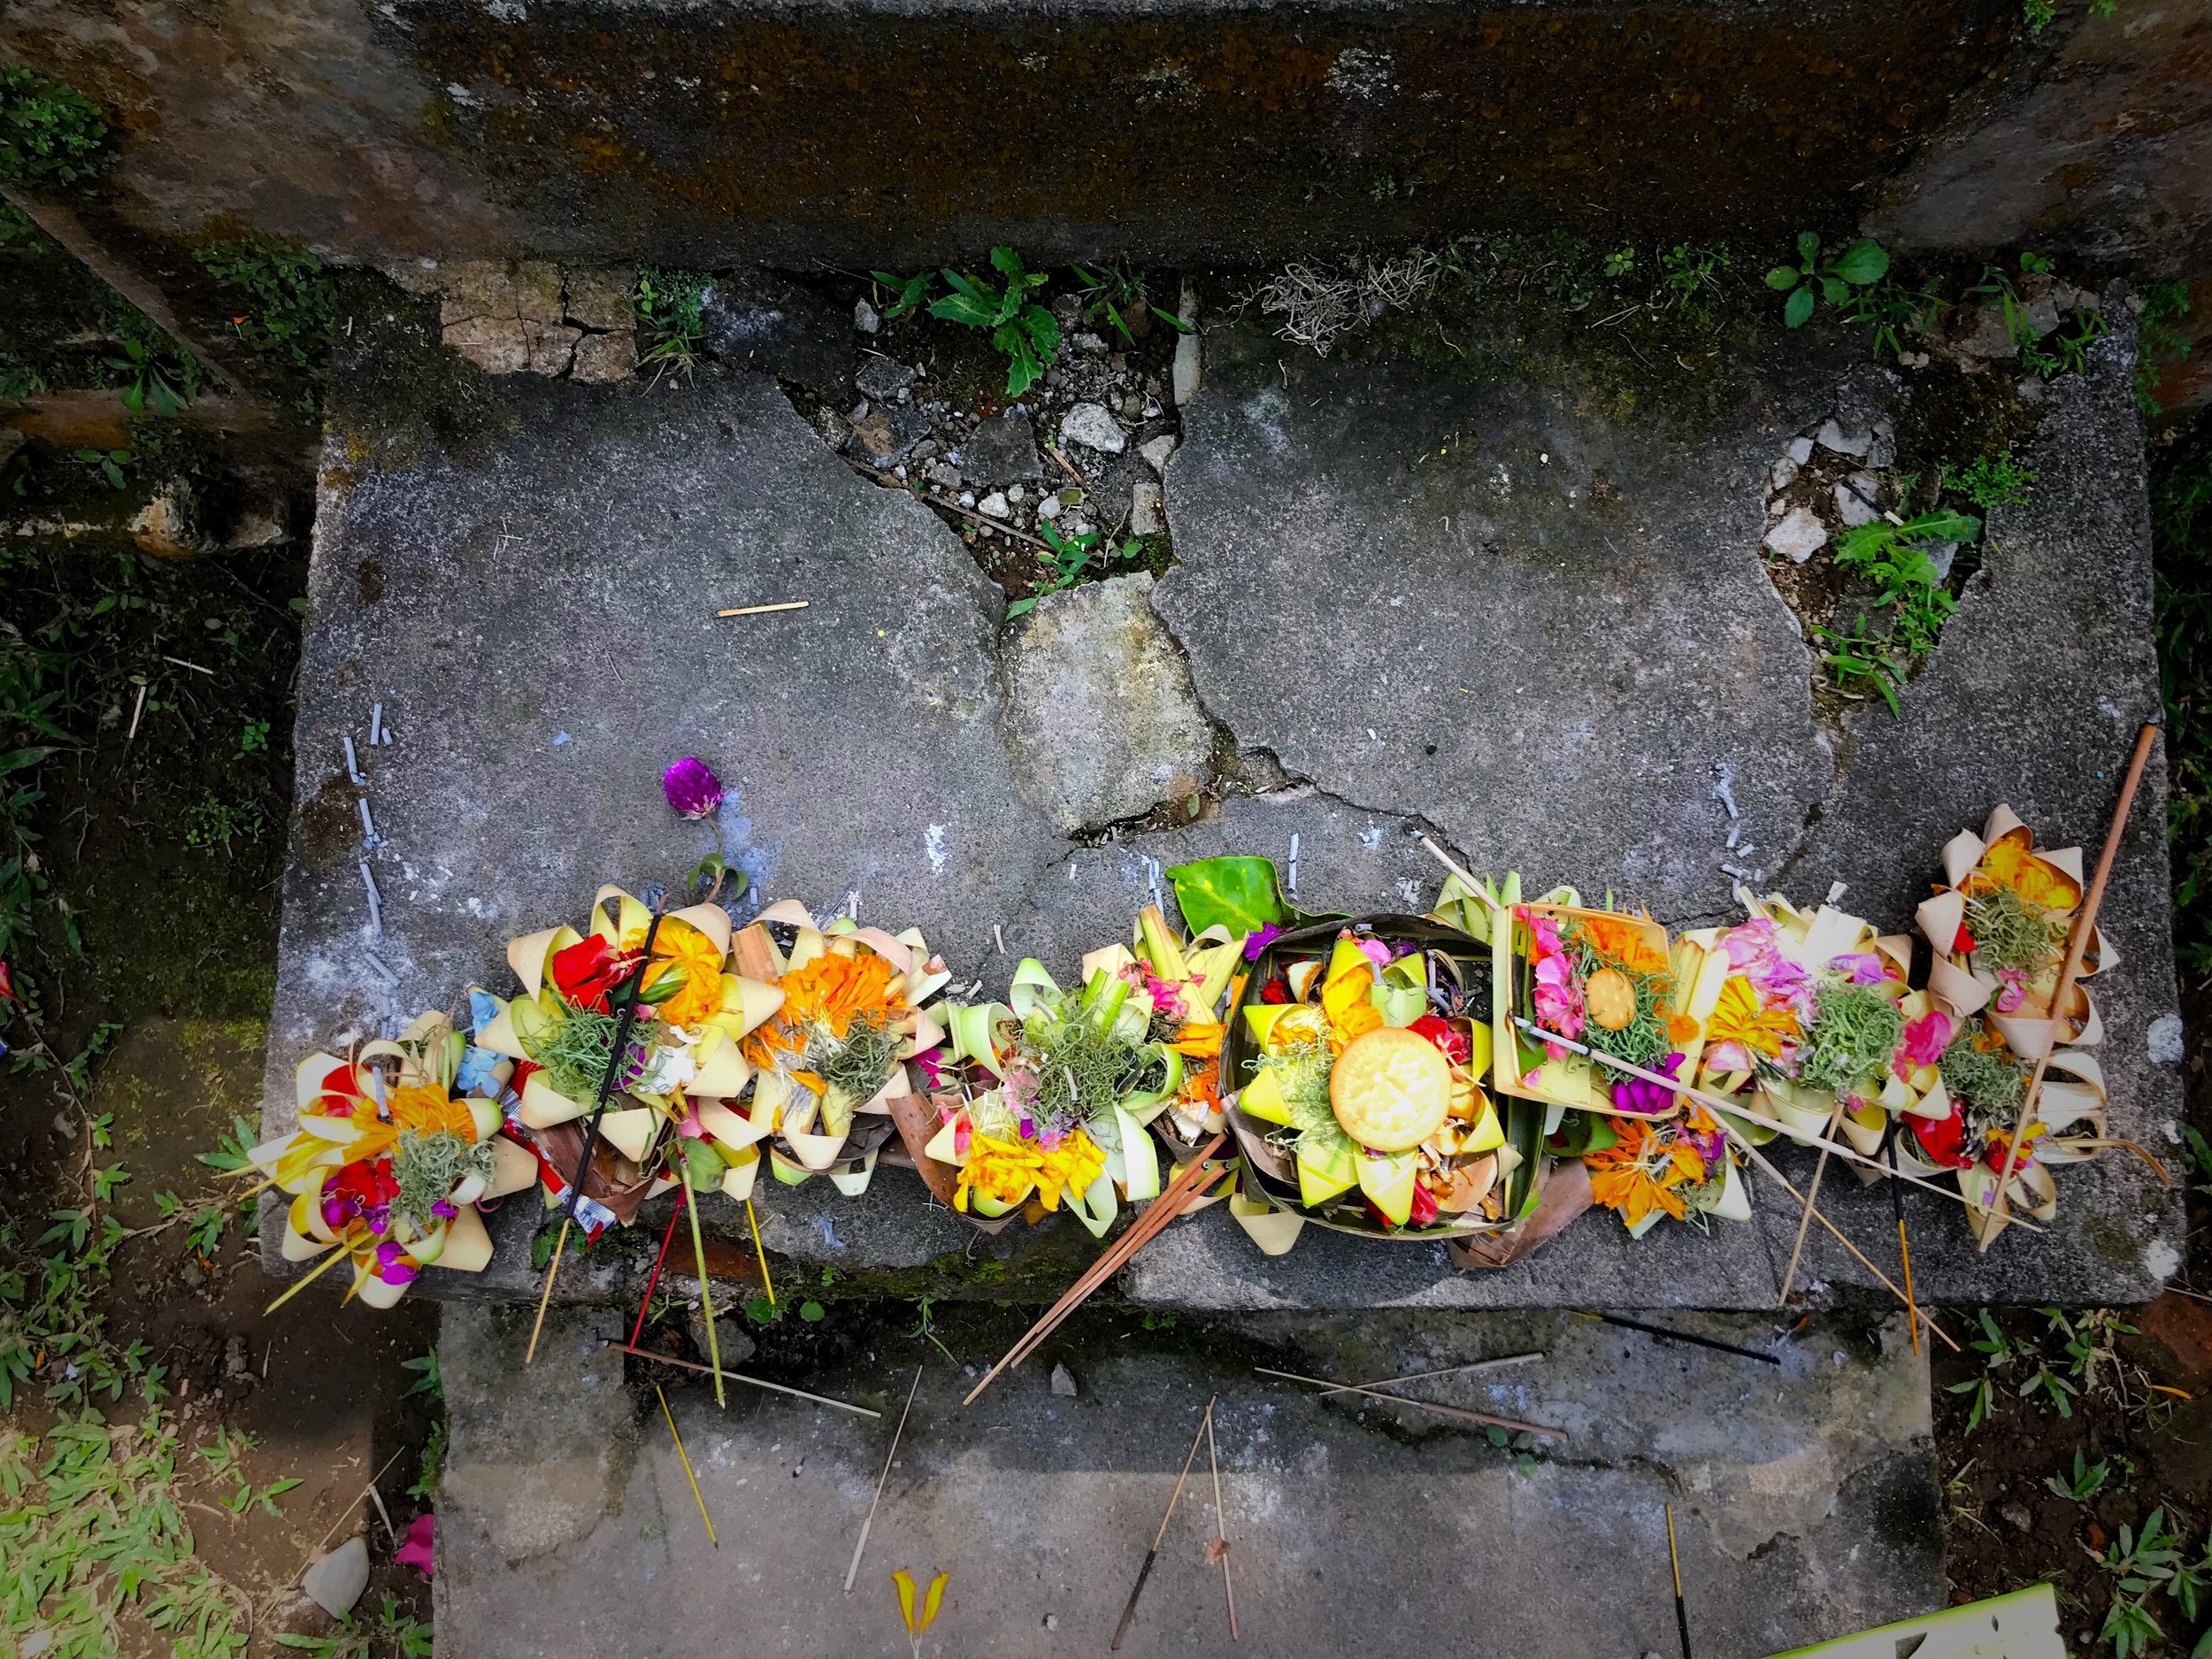 An assortment of daily offerings placed at the threshold of the bathing pools are filled with flowers and sticks of incense